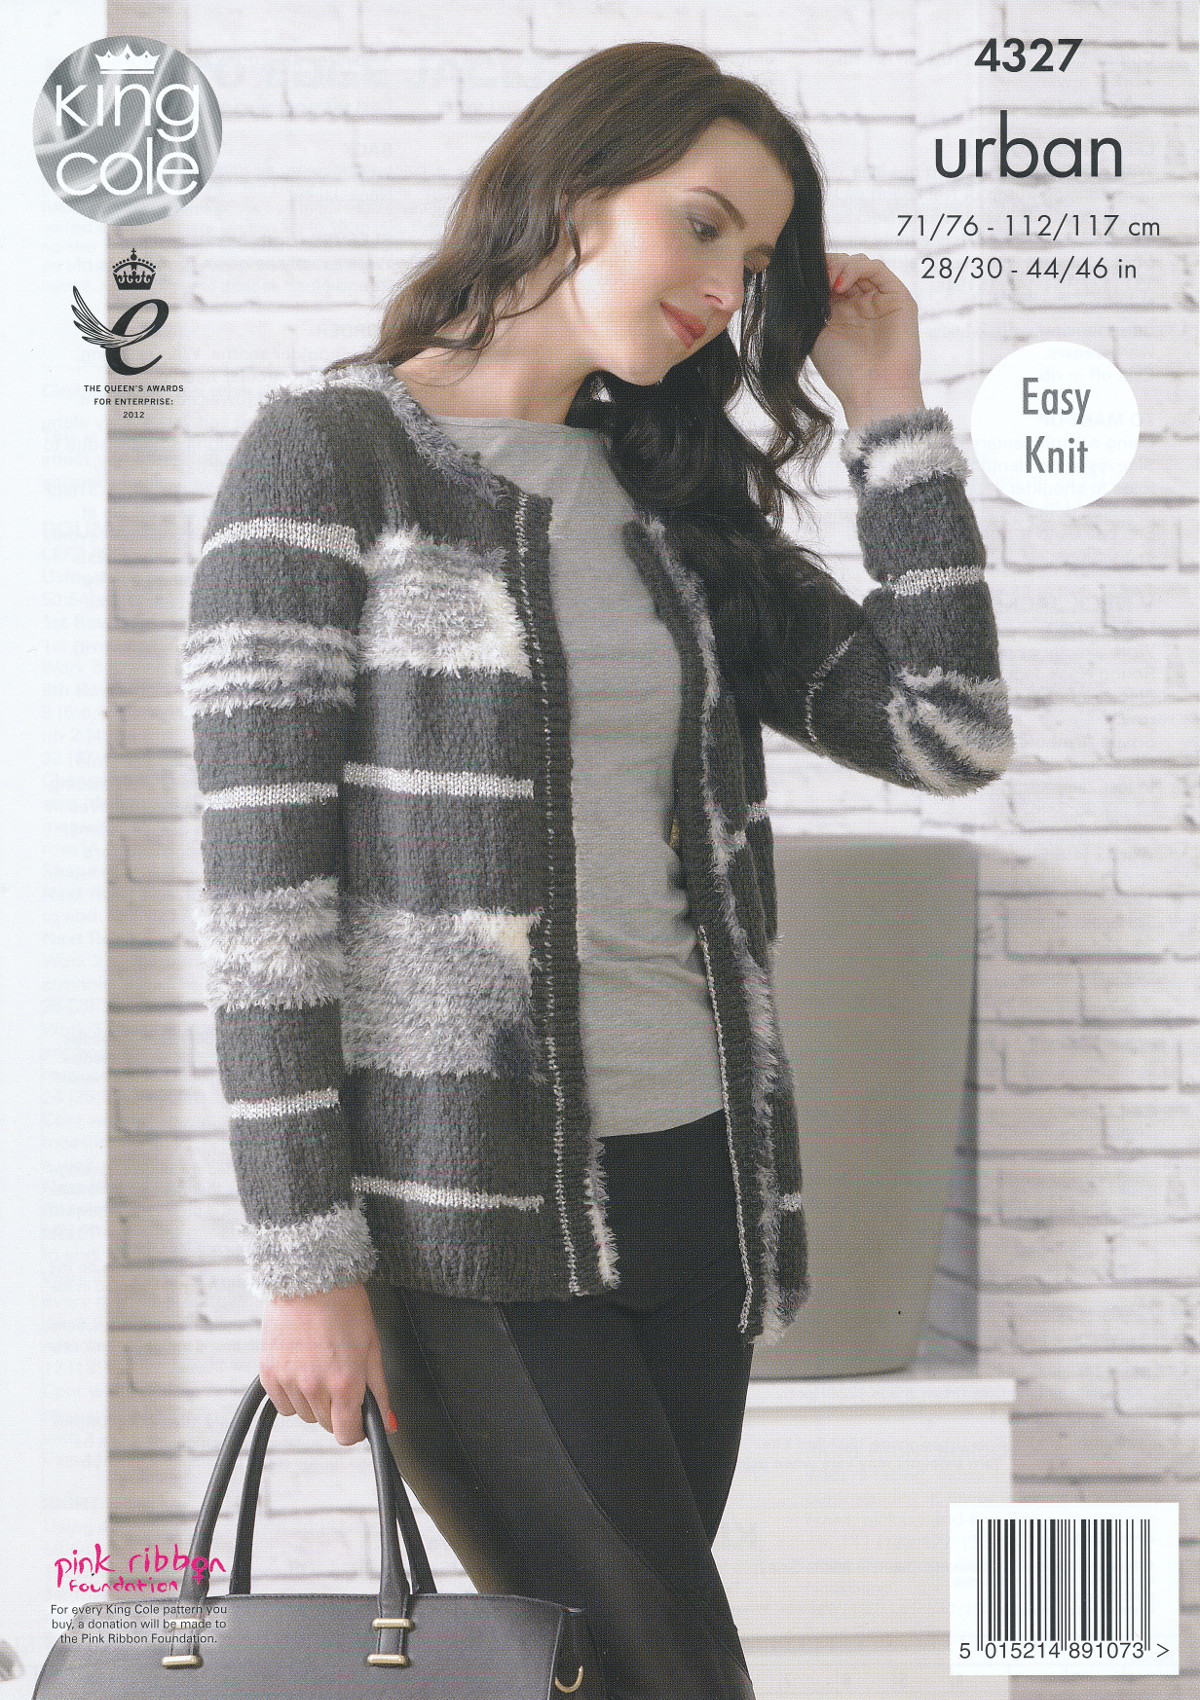 Free Knitting Patterns For Dogs Sweater : King Cole Urban Knitting Pattern Ladies Womens Easy Knit Long Sleeve Jacket 4...